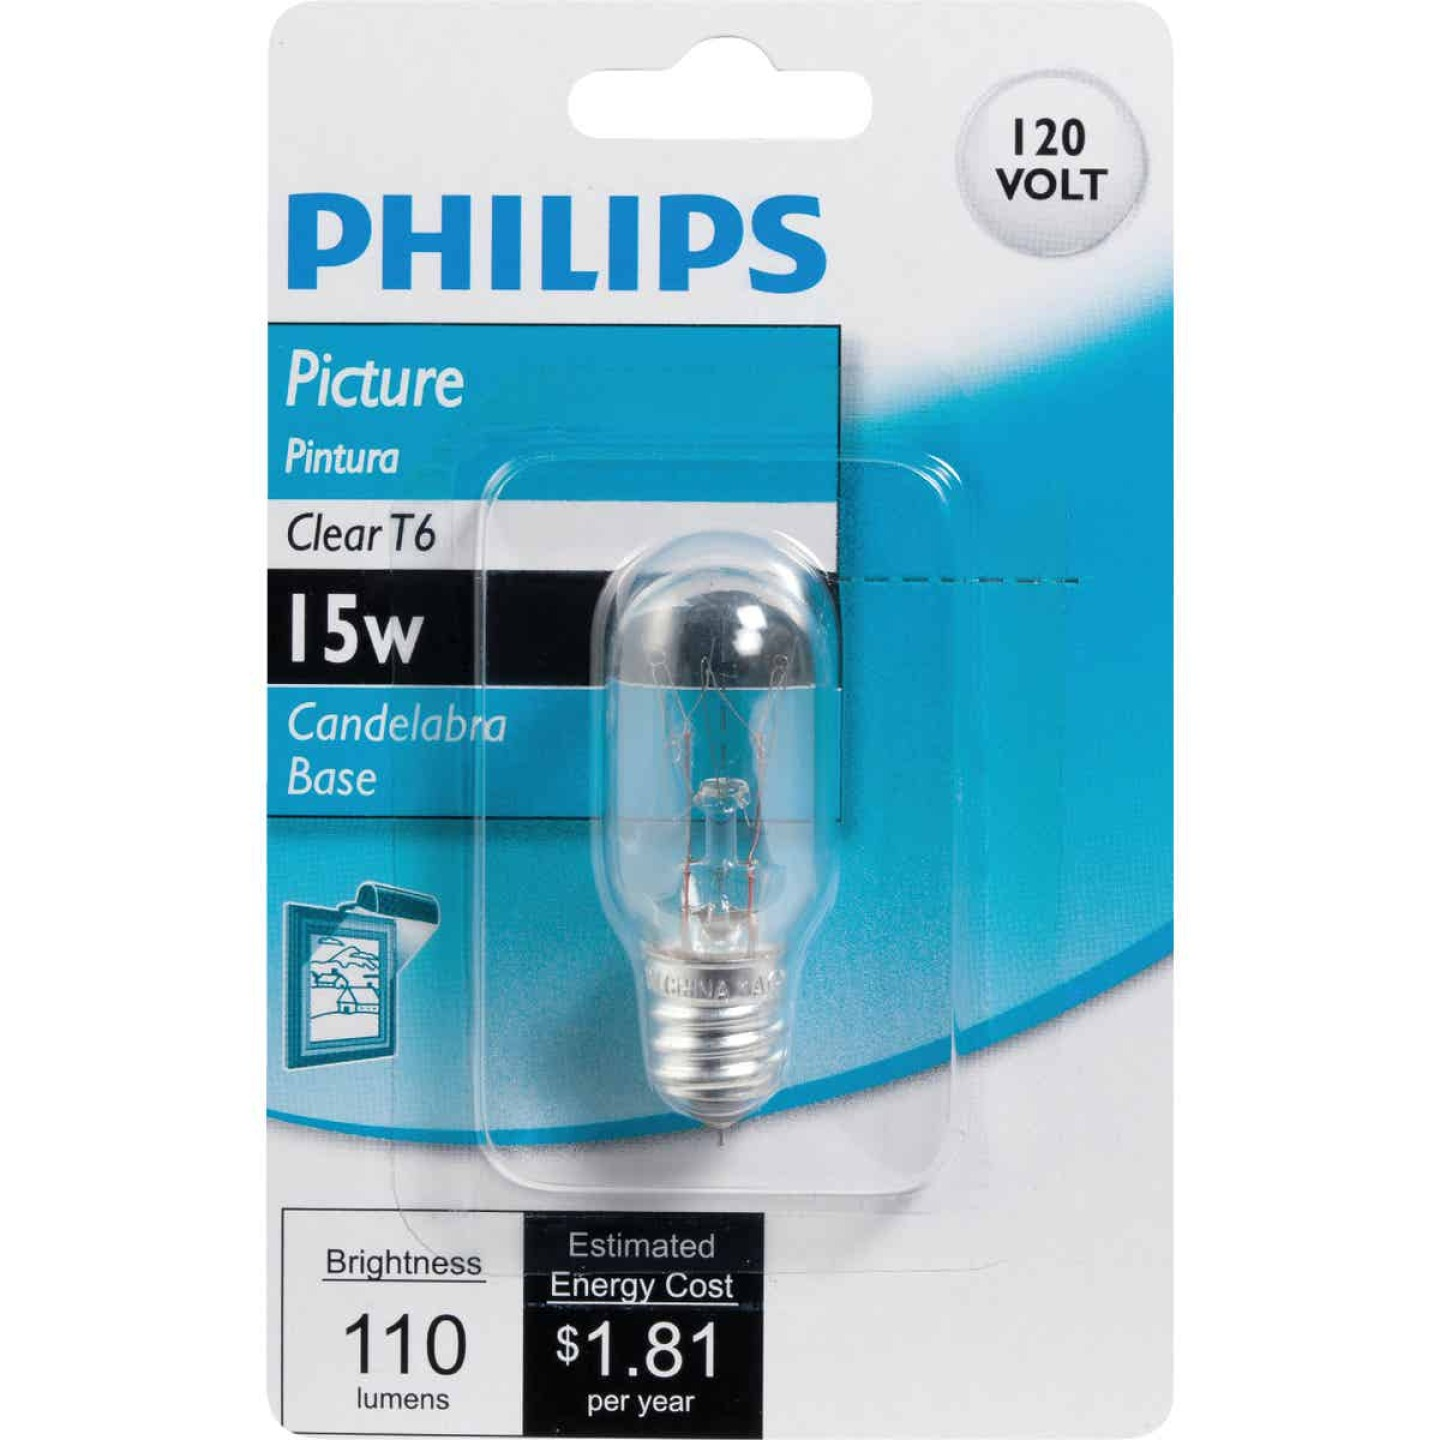 Philips 15W Clear Candelabra T6 Incandescent Exit Sign Light Bulb Image 2